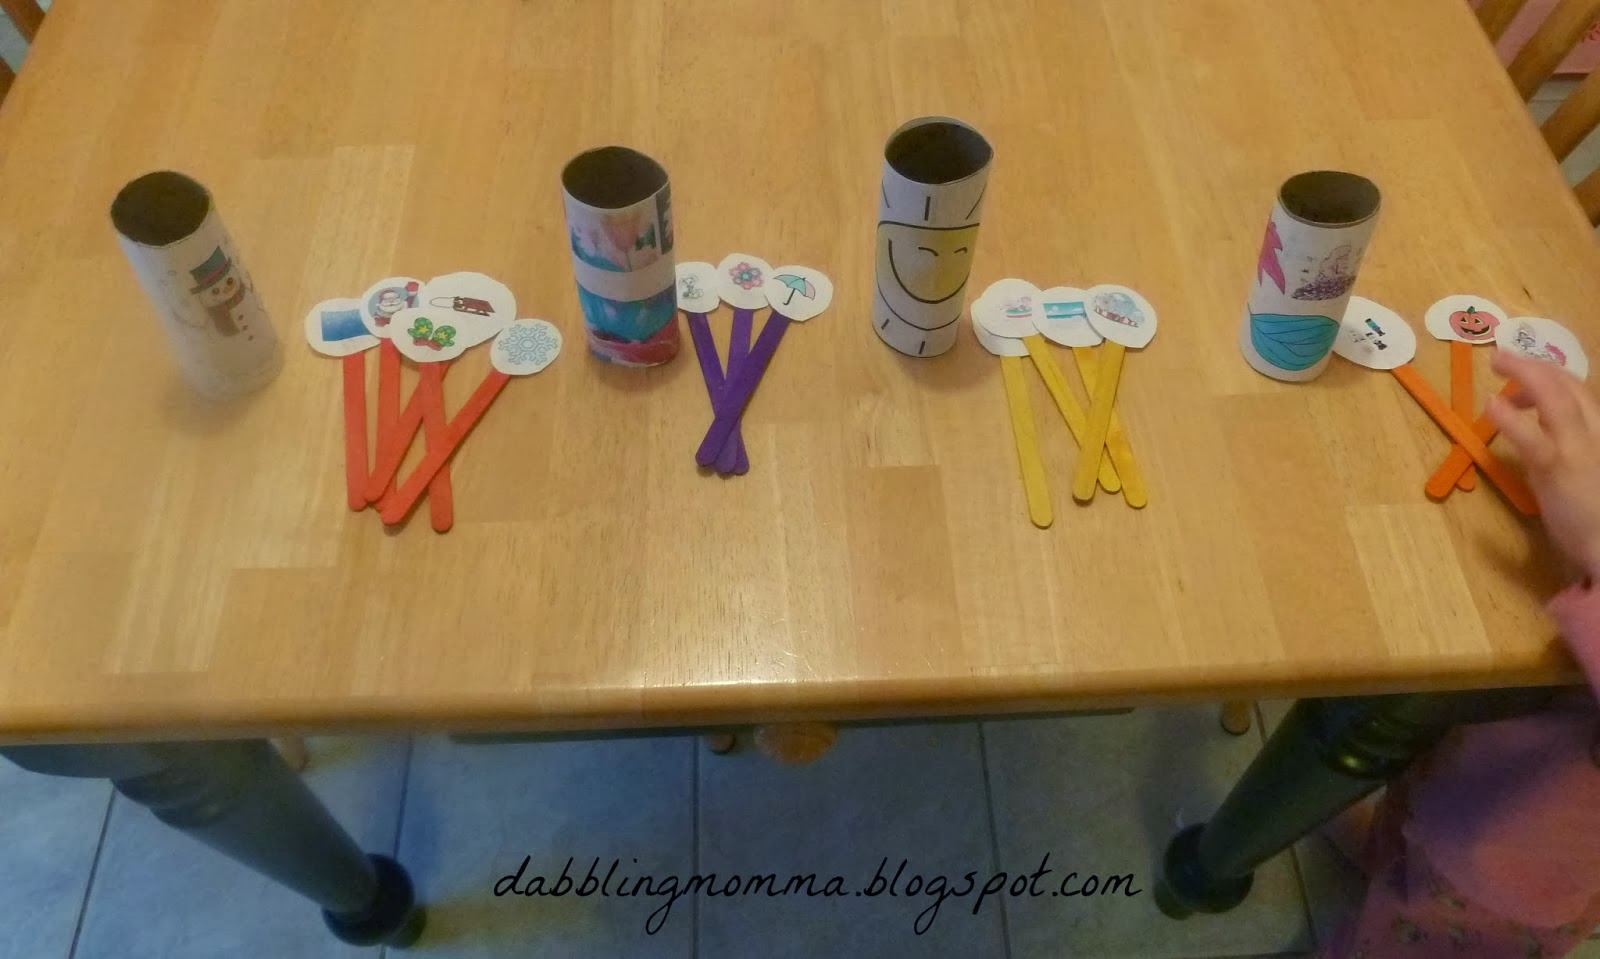 http://dabblingmomma.blogspot.com/2014/02/learning-about-seasons.html